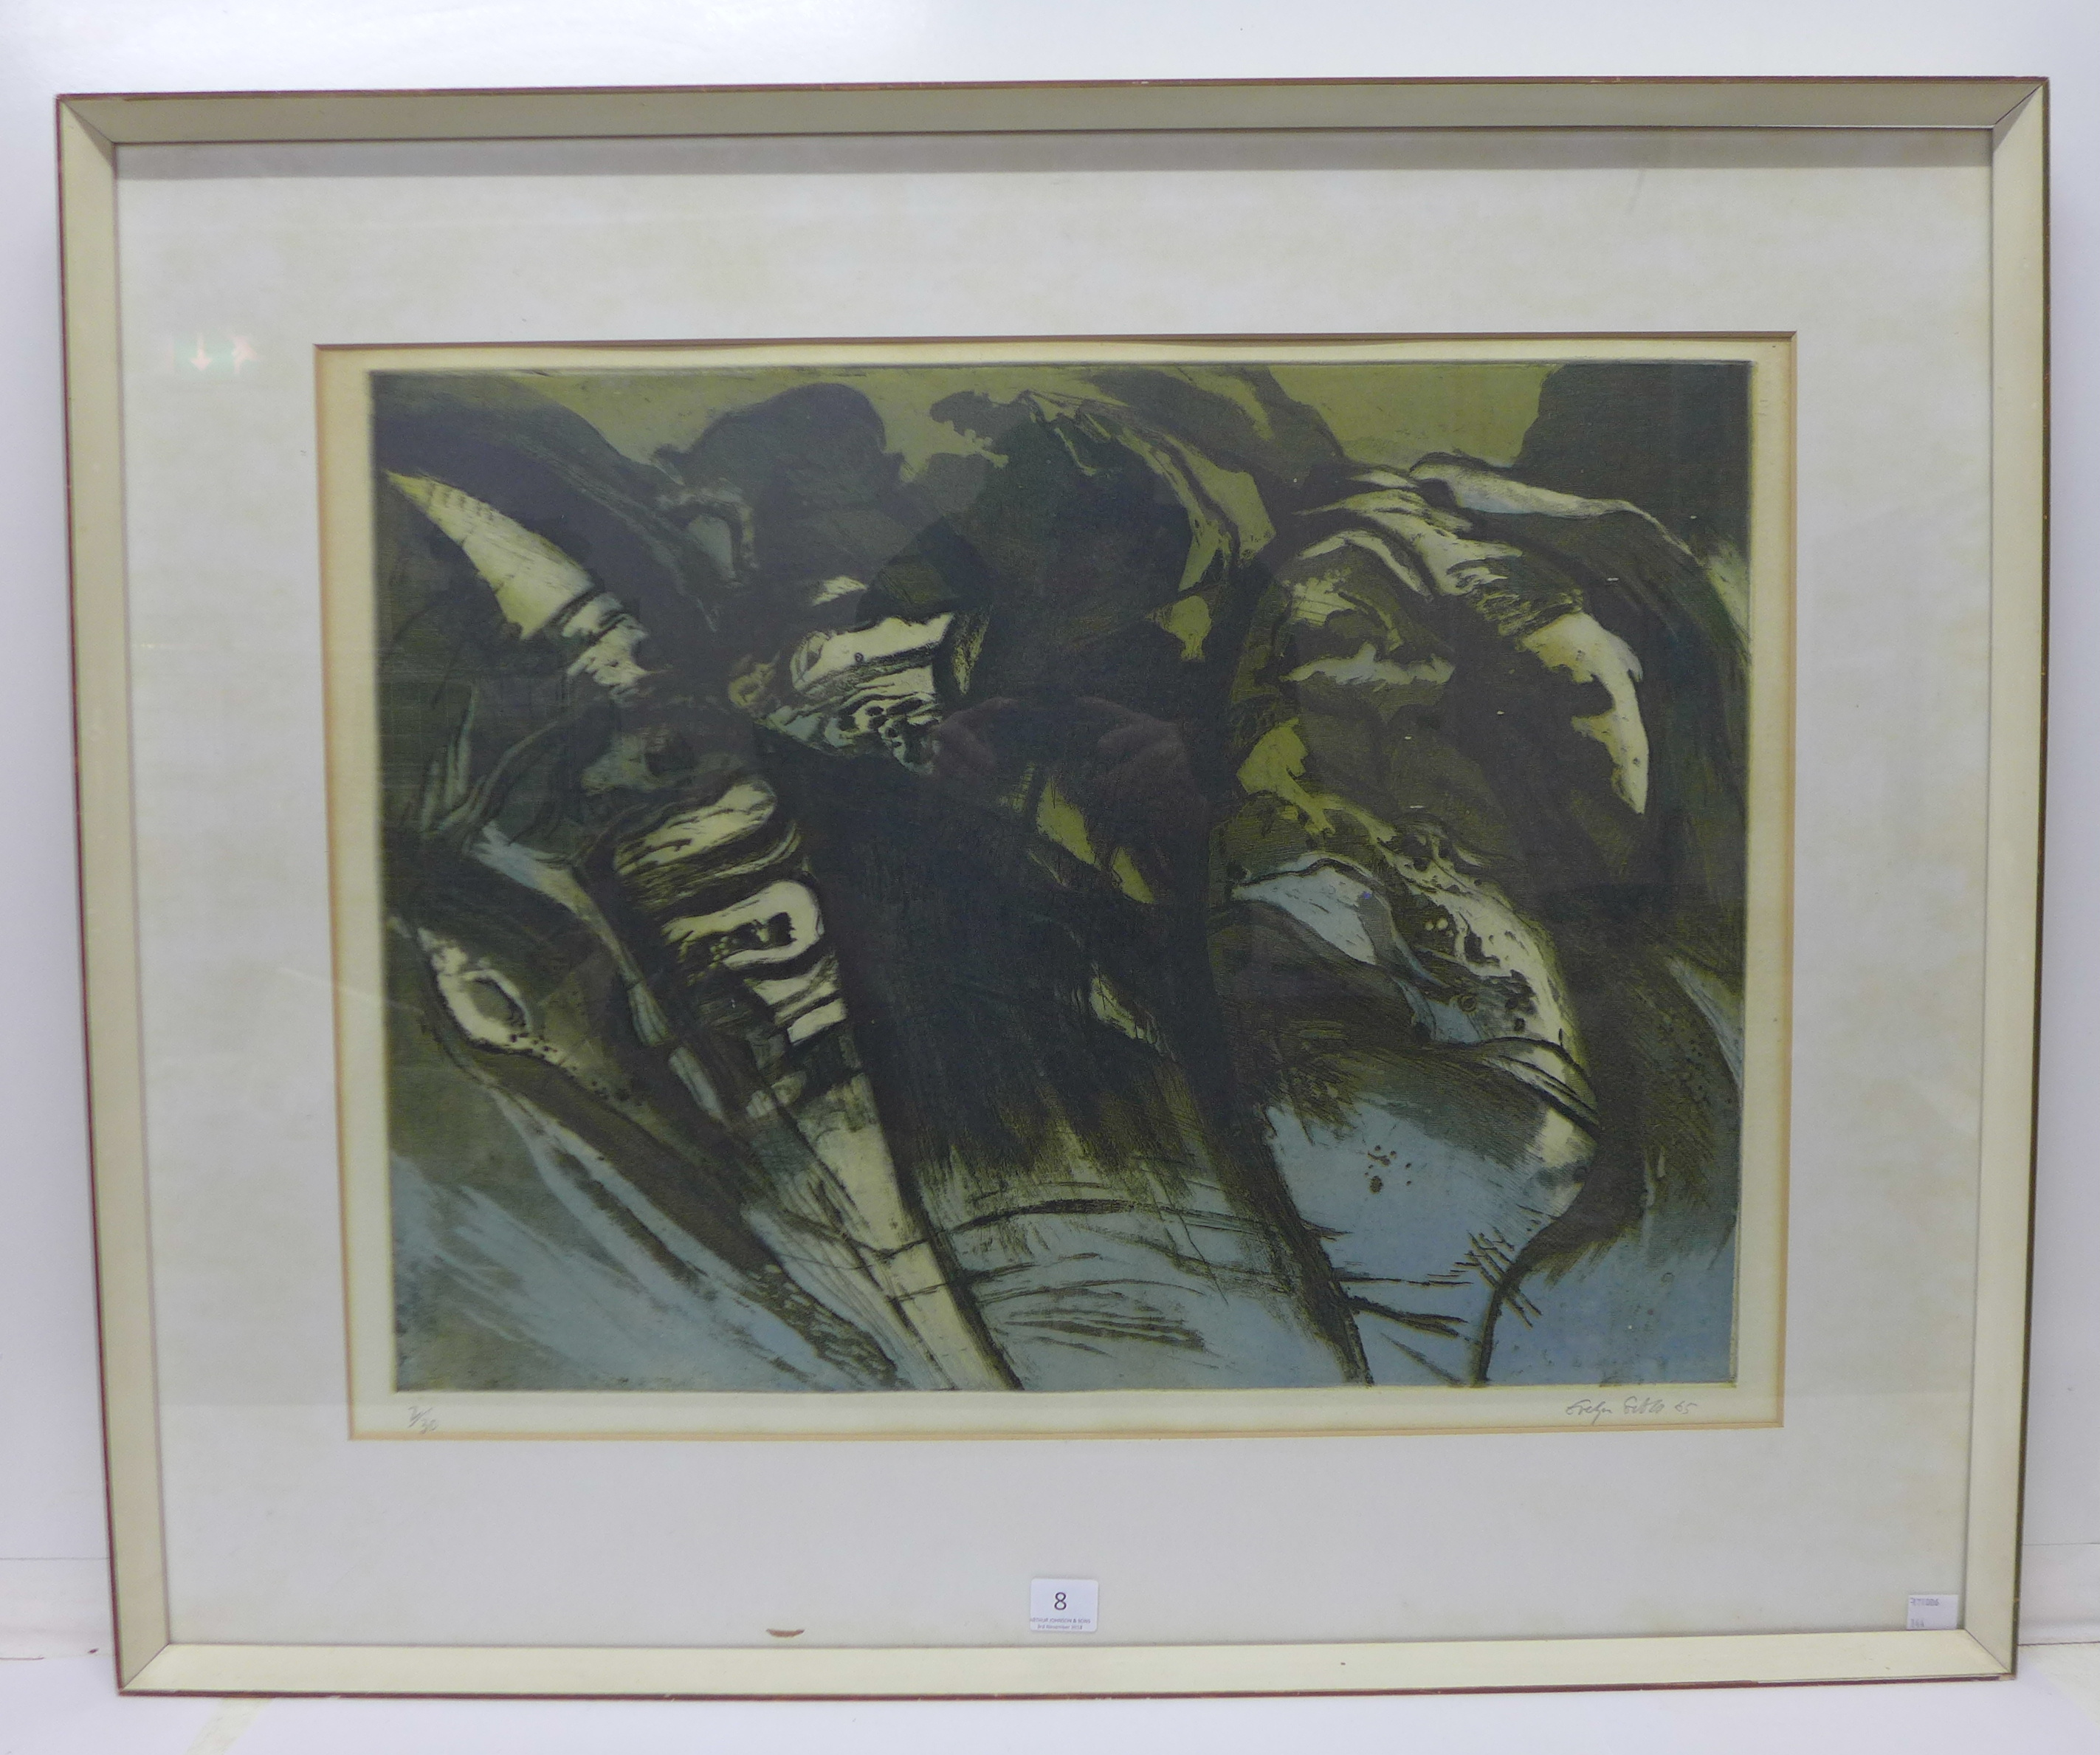 Lot 21 - A signed Evelyn Gibbs (British 1905-1991) limited edition abstract etching, dated 1965,